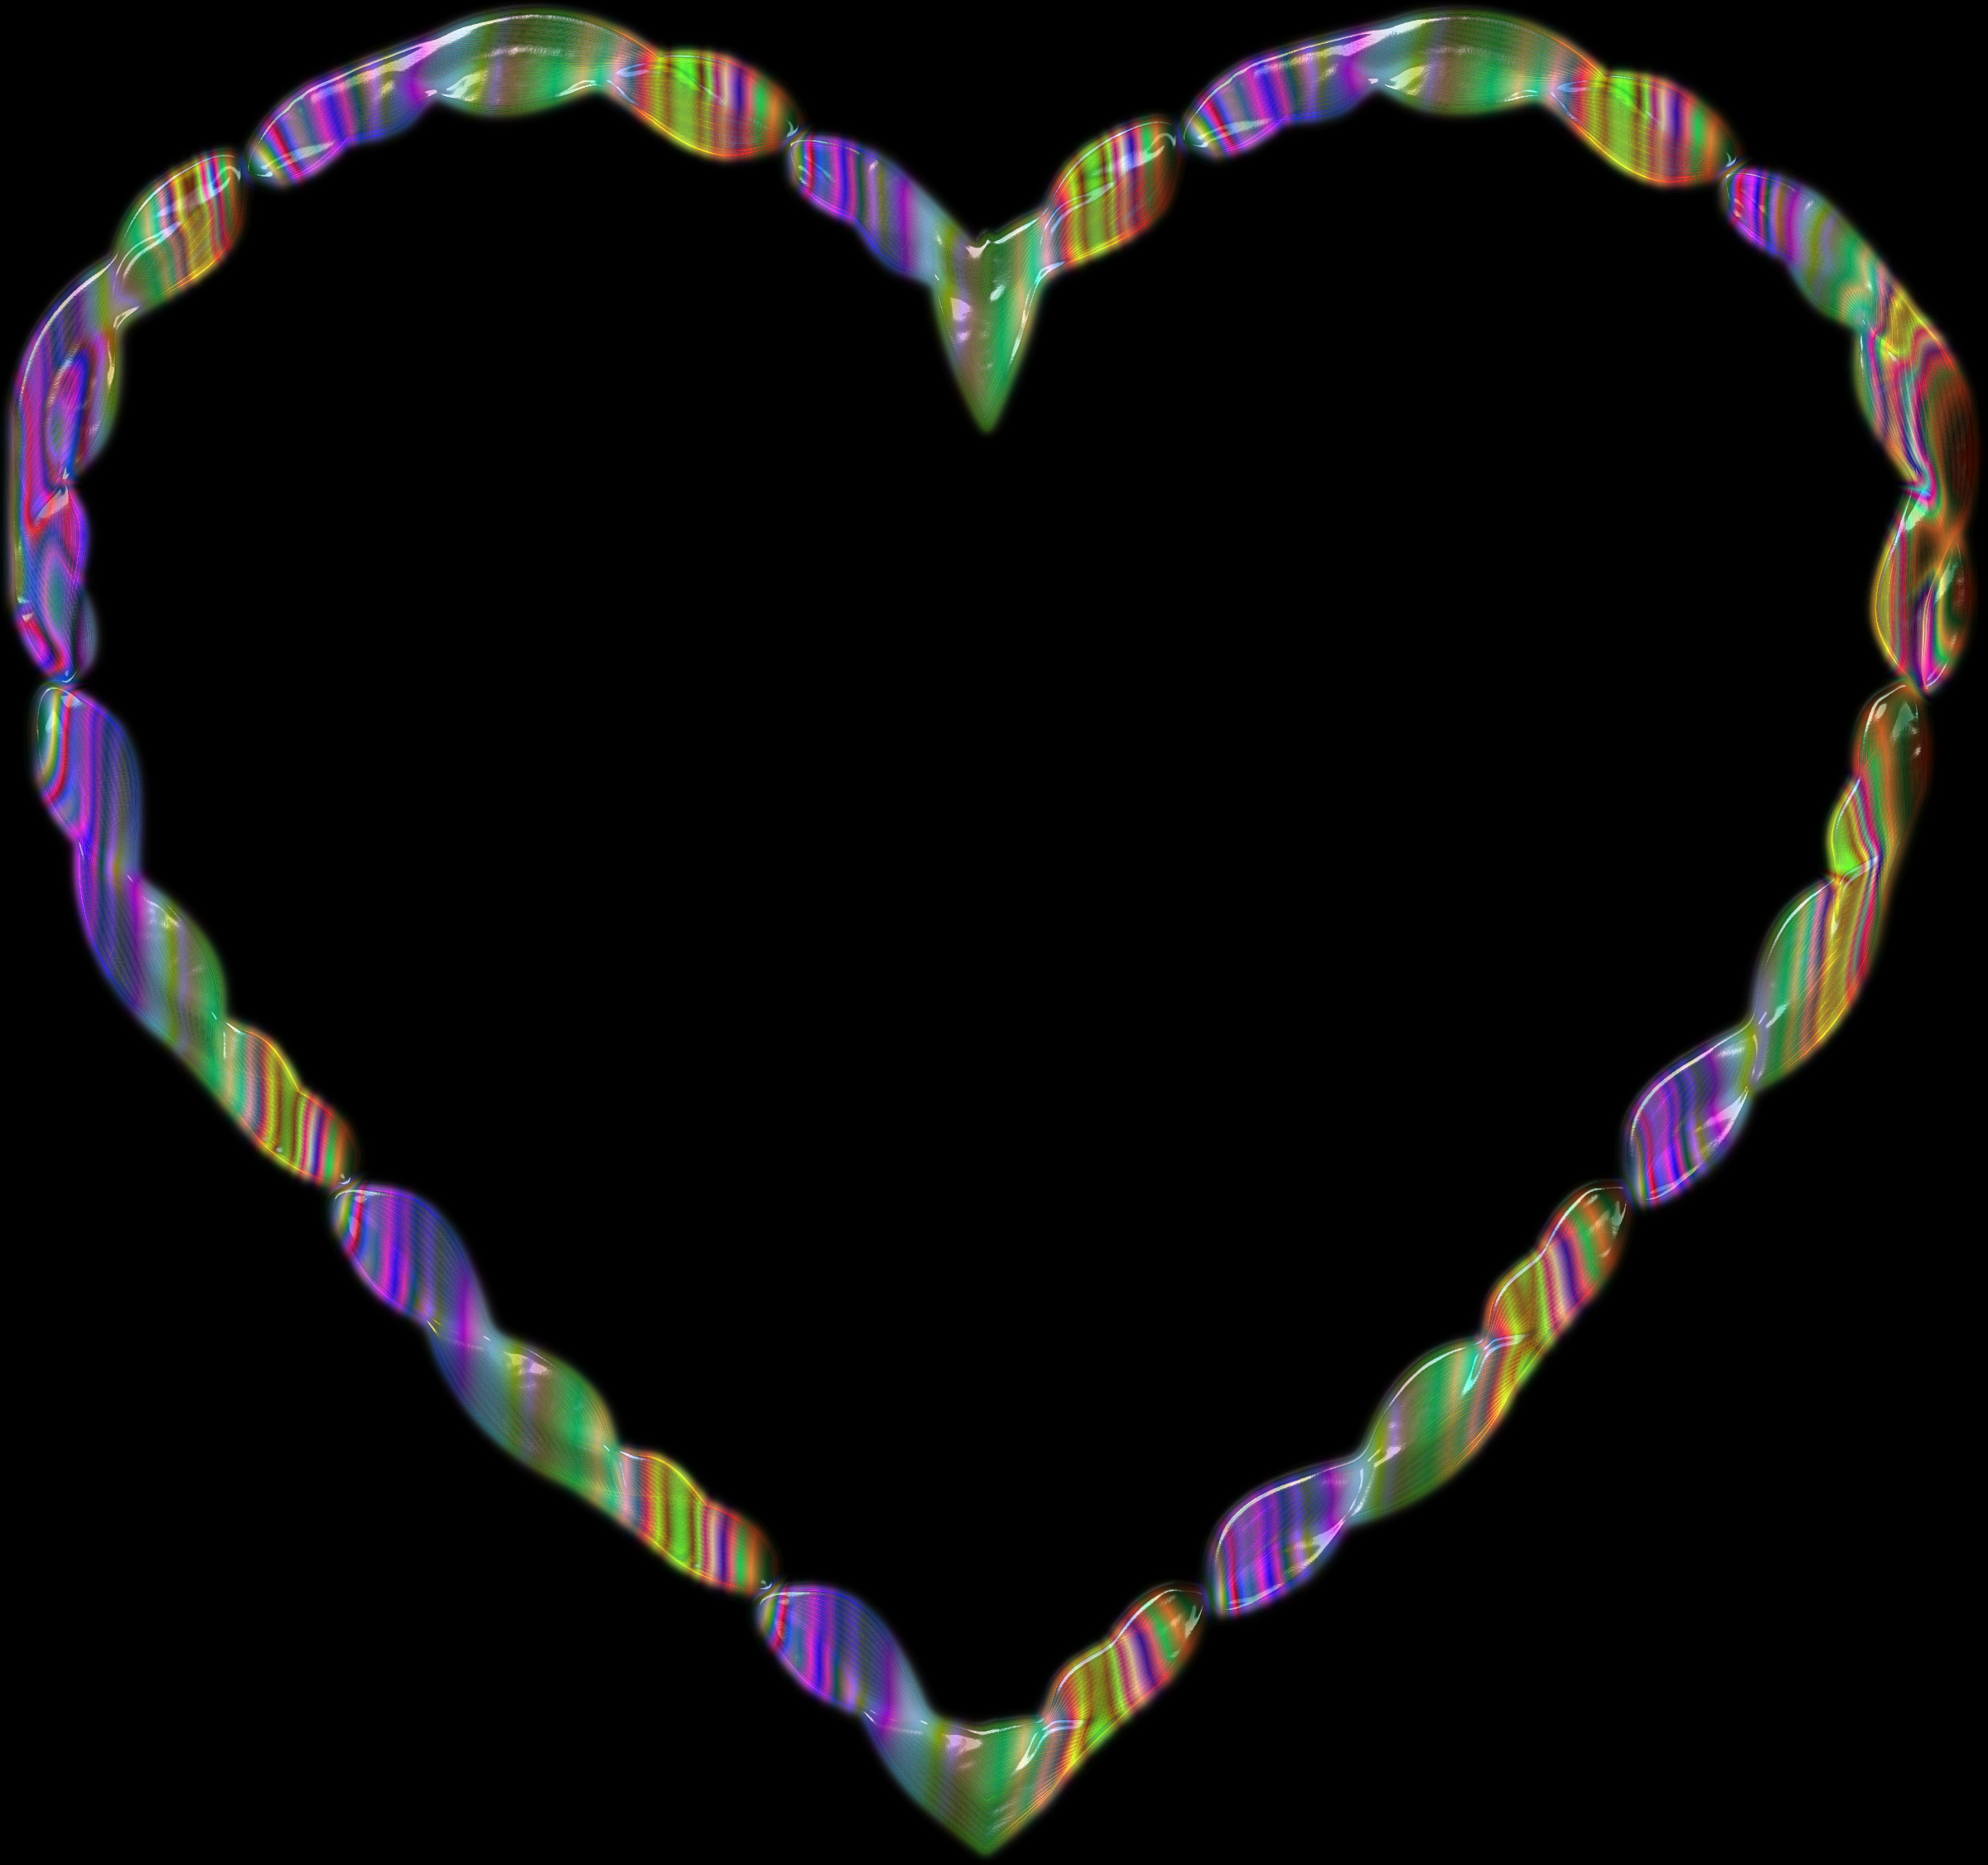 Rainbow Line Art Heart 3 by GDJ